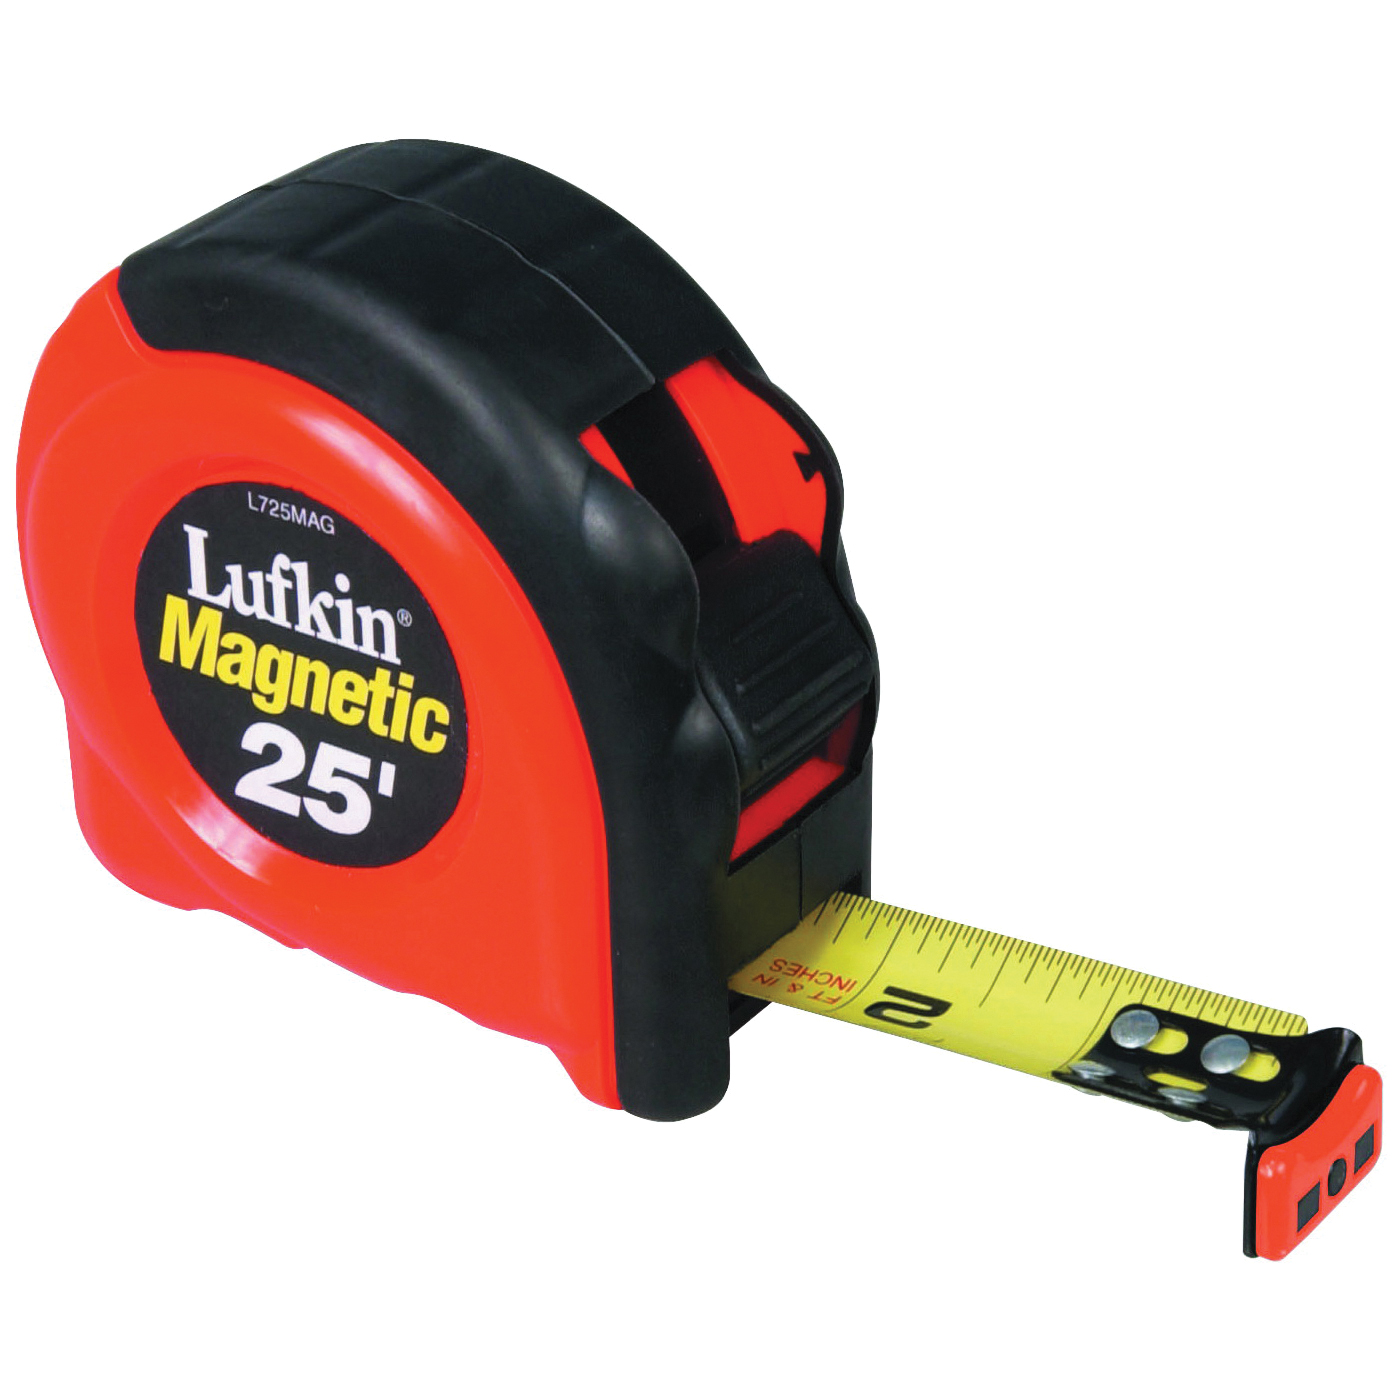 Picture of Crescent Lufkin L725MAG Tape Measure, 25 ft L Blade, 1 in W Blade, Steel Blade, ABS/Rubber Case, Orange Case